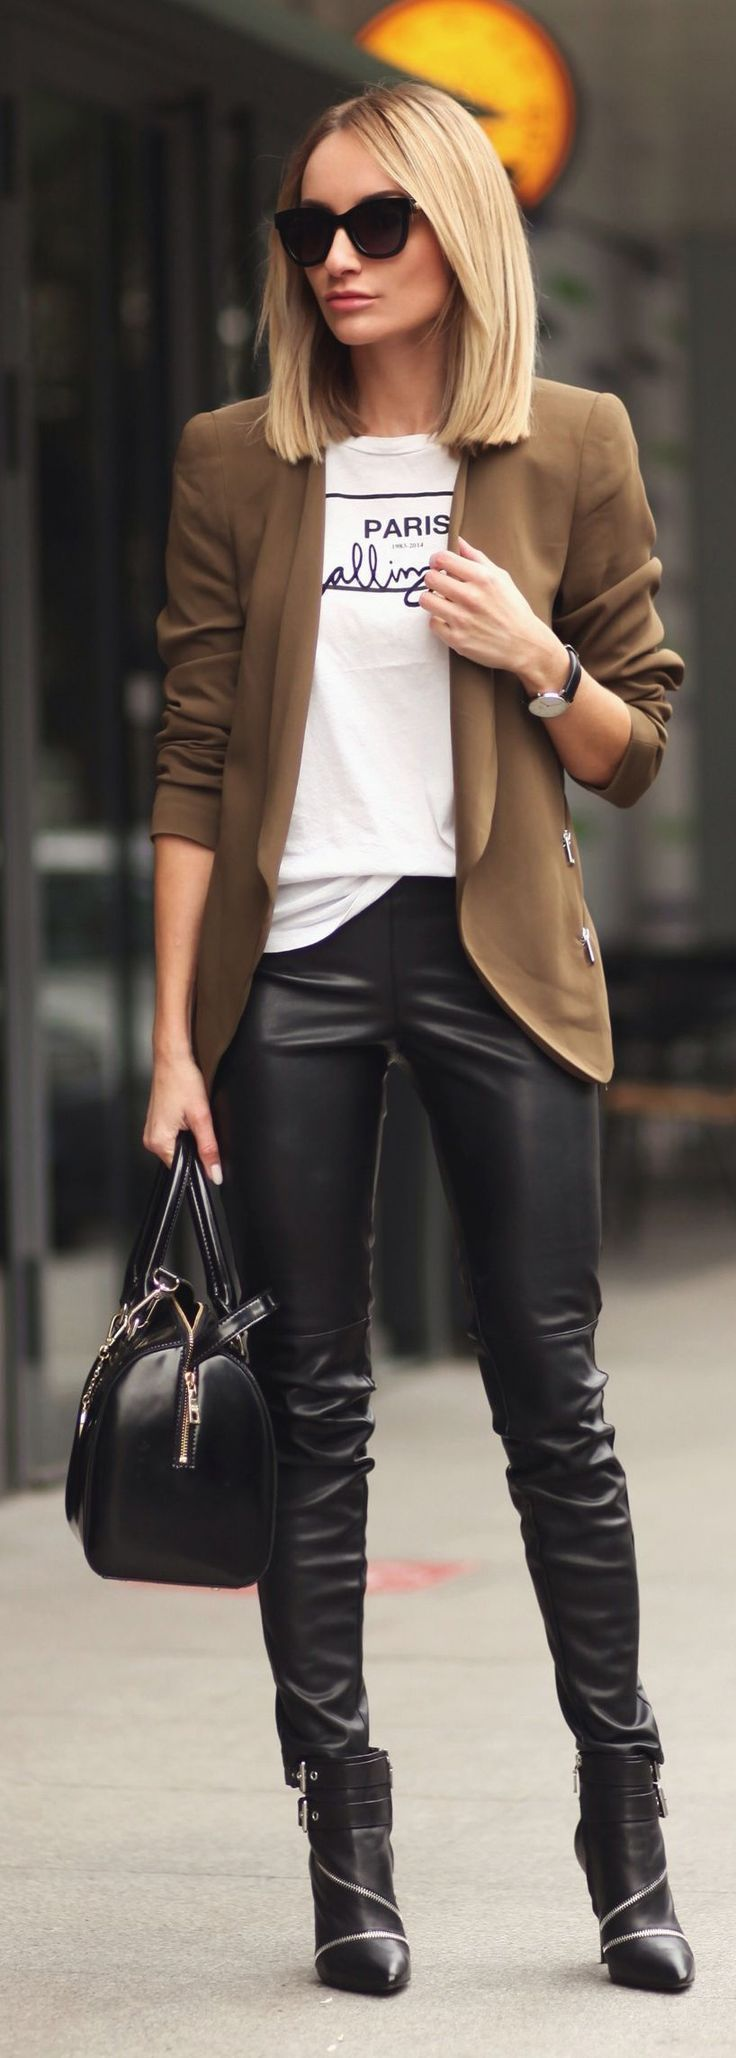 @roressclothes closet ideas #women fashion outfit #clothing style apparel camel blazer, black trousers, white shirt